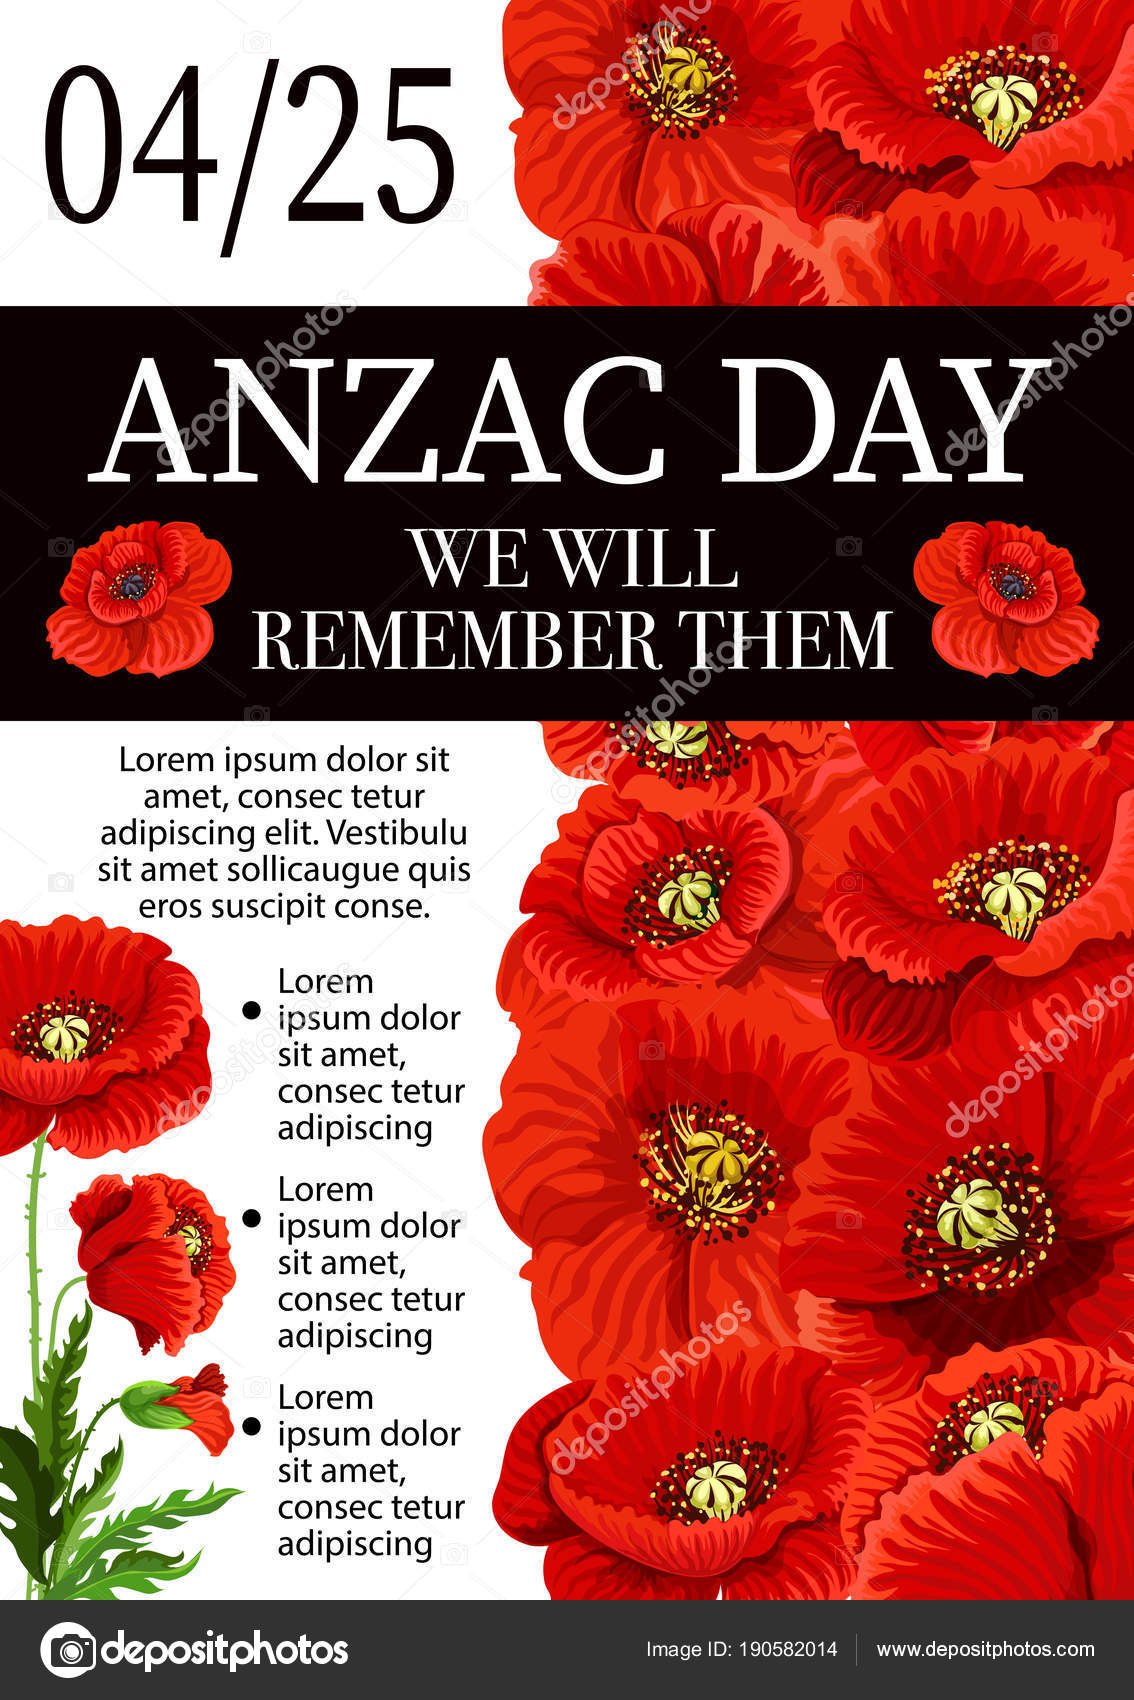 Anzac day lest we forget remembrance vector poster stock vector anzac day lest we forget greeting card of poppy flowers for 25 april australian and new zealand war remembrance anniversary holiday mightylinksfo